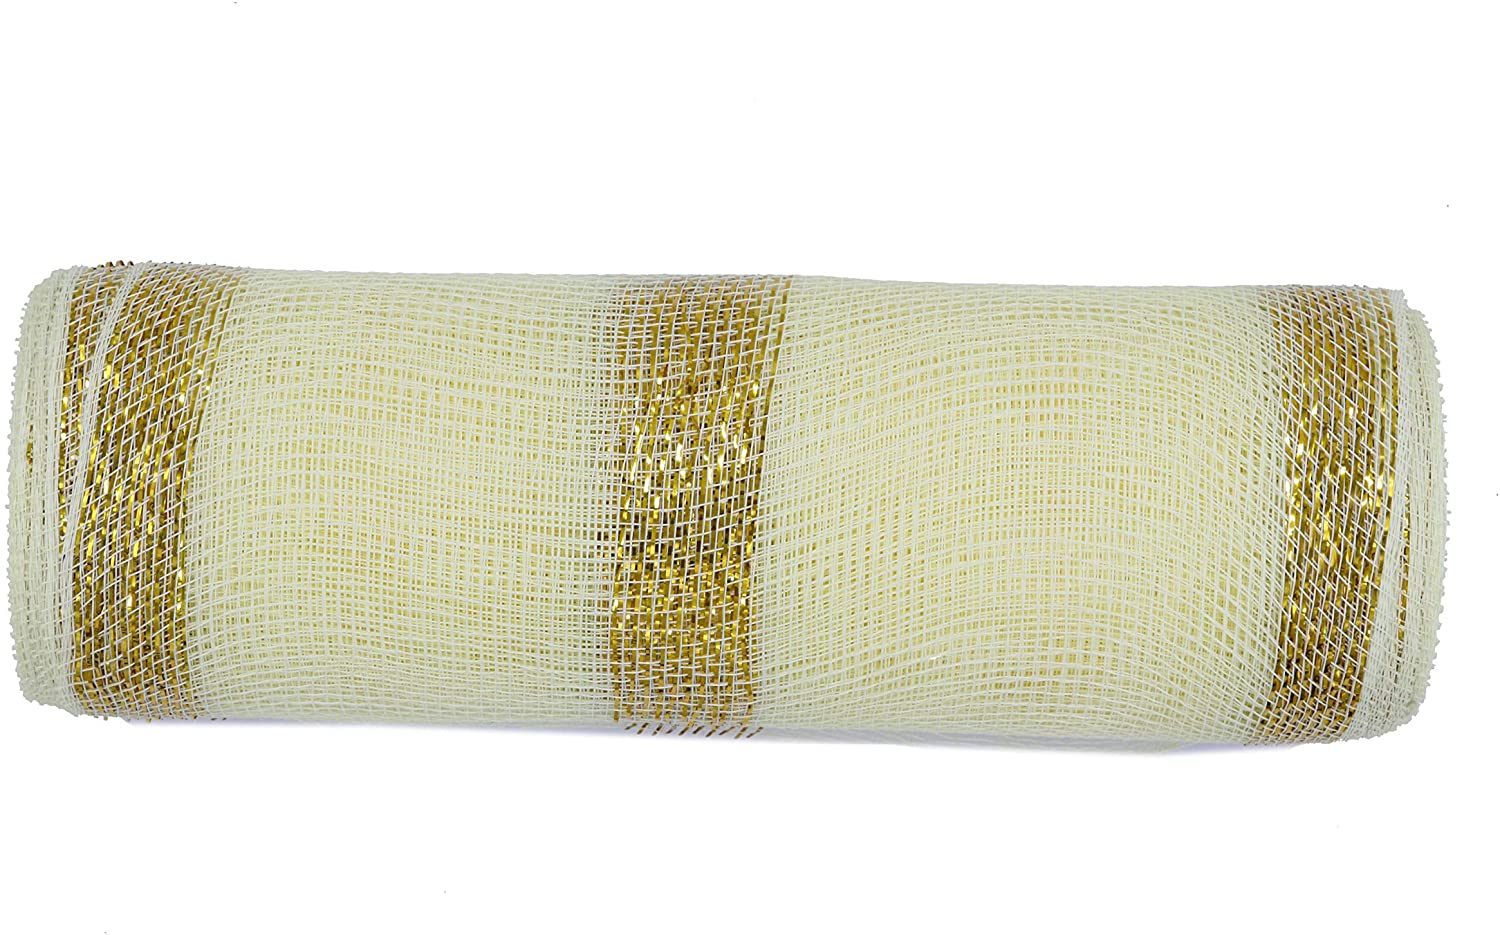 10 inch x 30 feet(10 Yards)-YYCRAFT Metallic Deco Poly Mesh Ribbon for Decoration/Wreath Making Craft(Ivory/Gold Style 2)